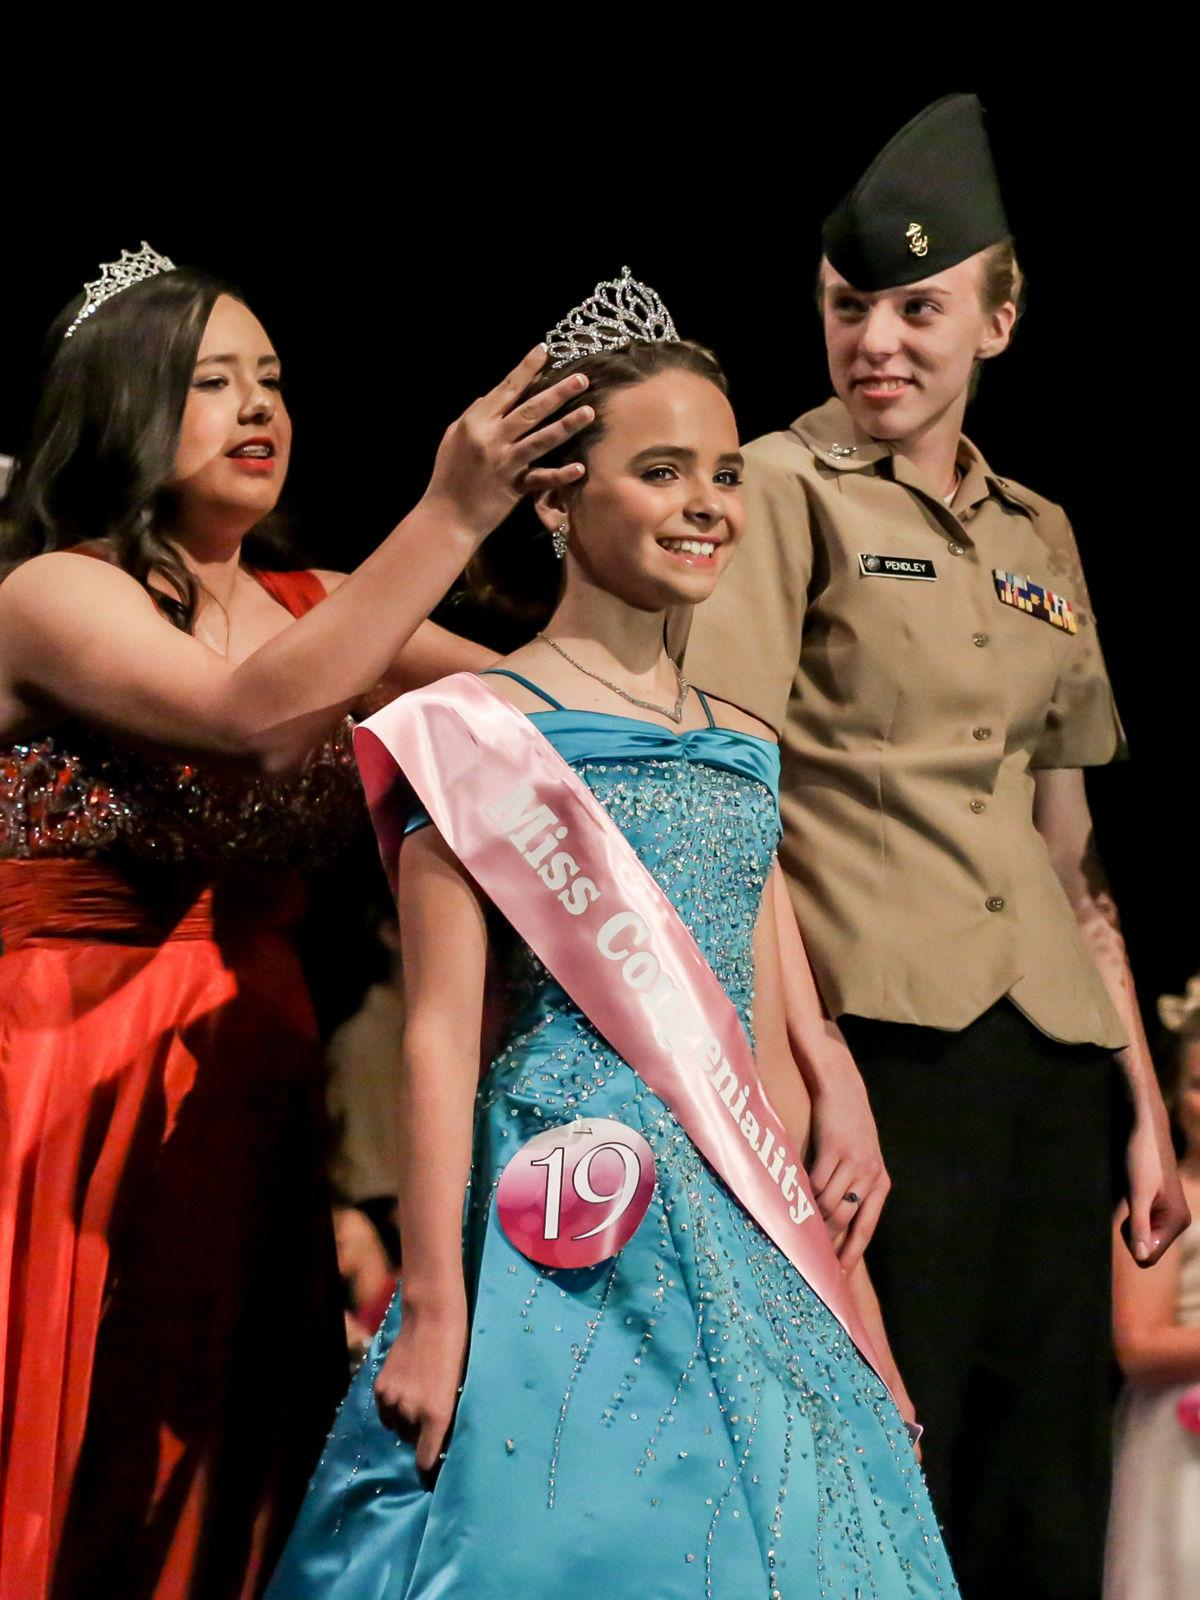 A QUEEN IS CROWNED: 11-year-old Addison Cunningham is 2017's Little Miss McDowell